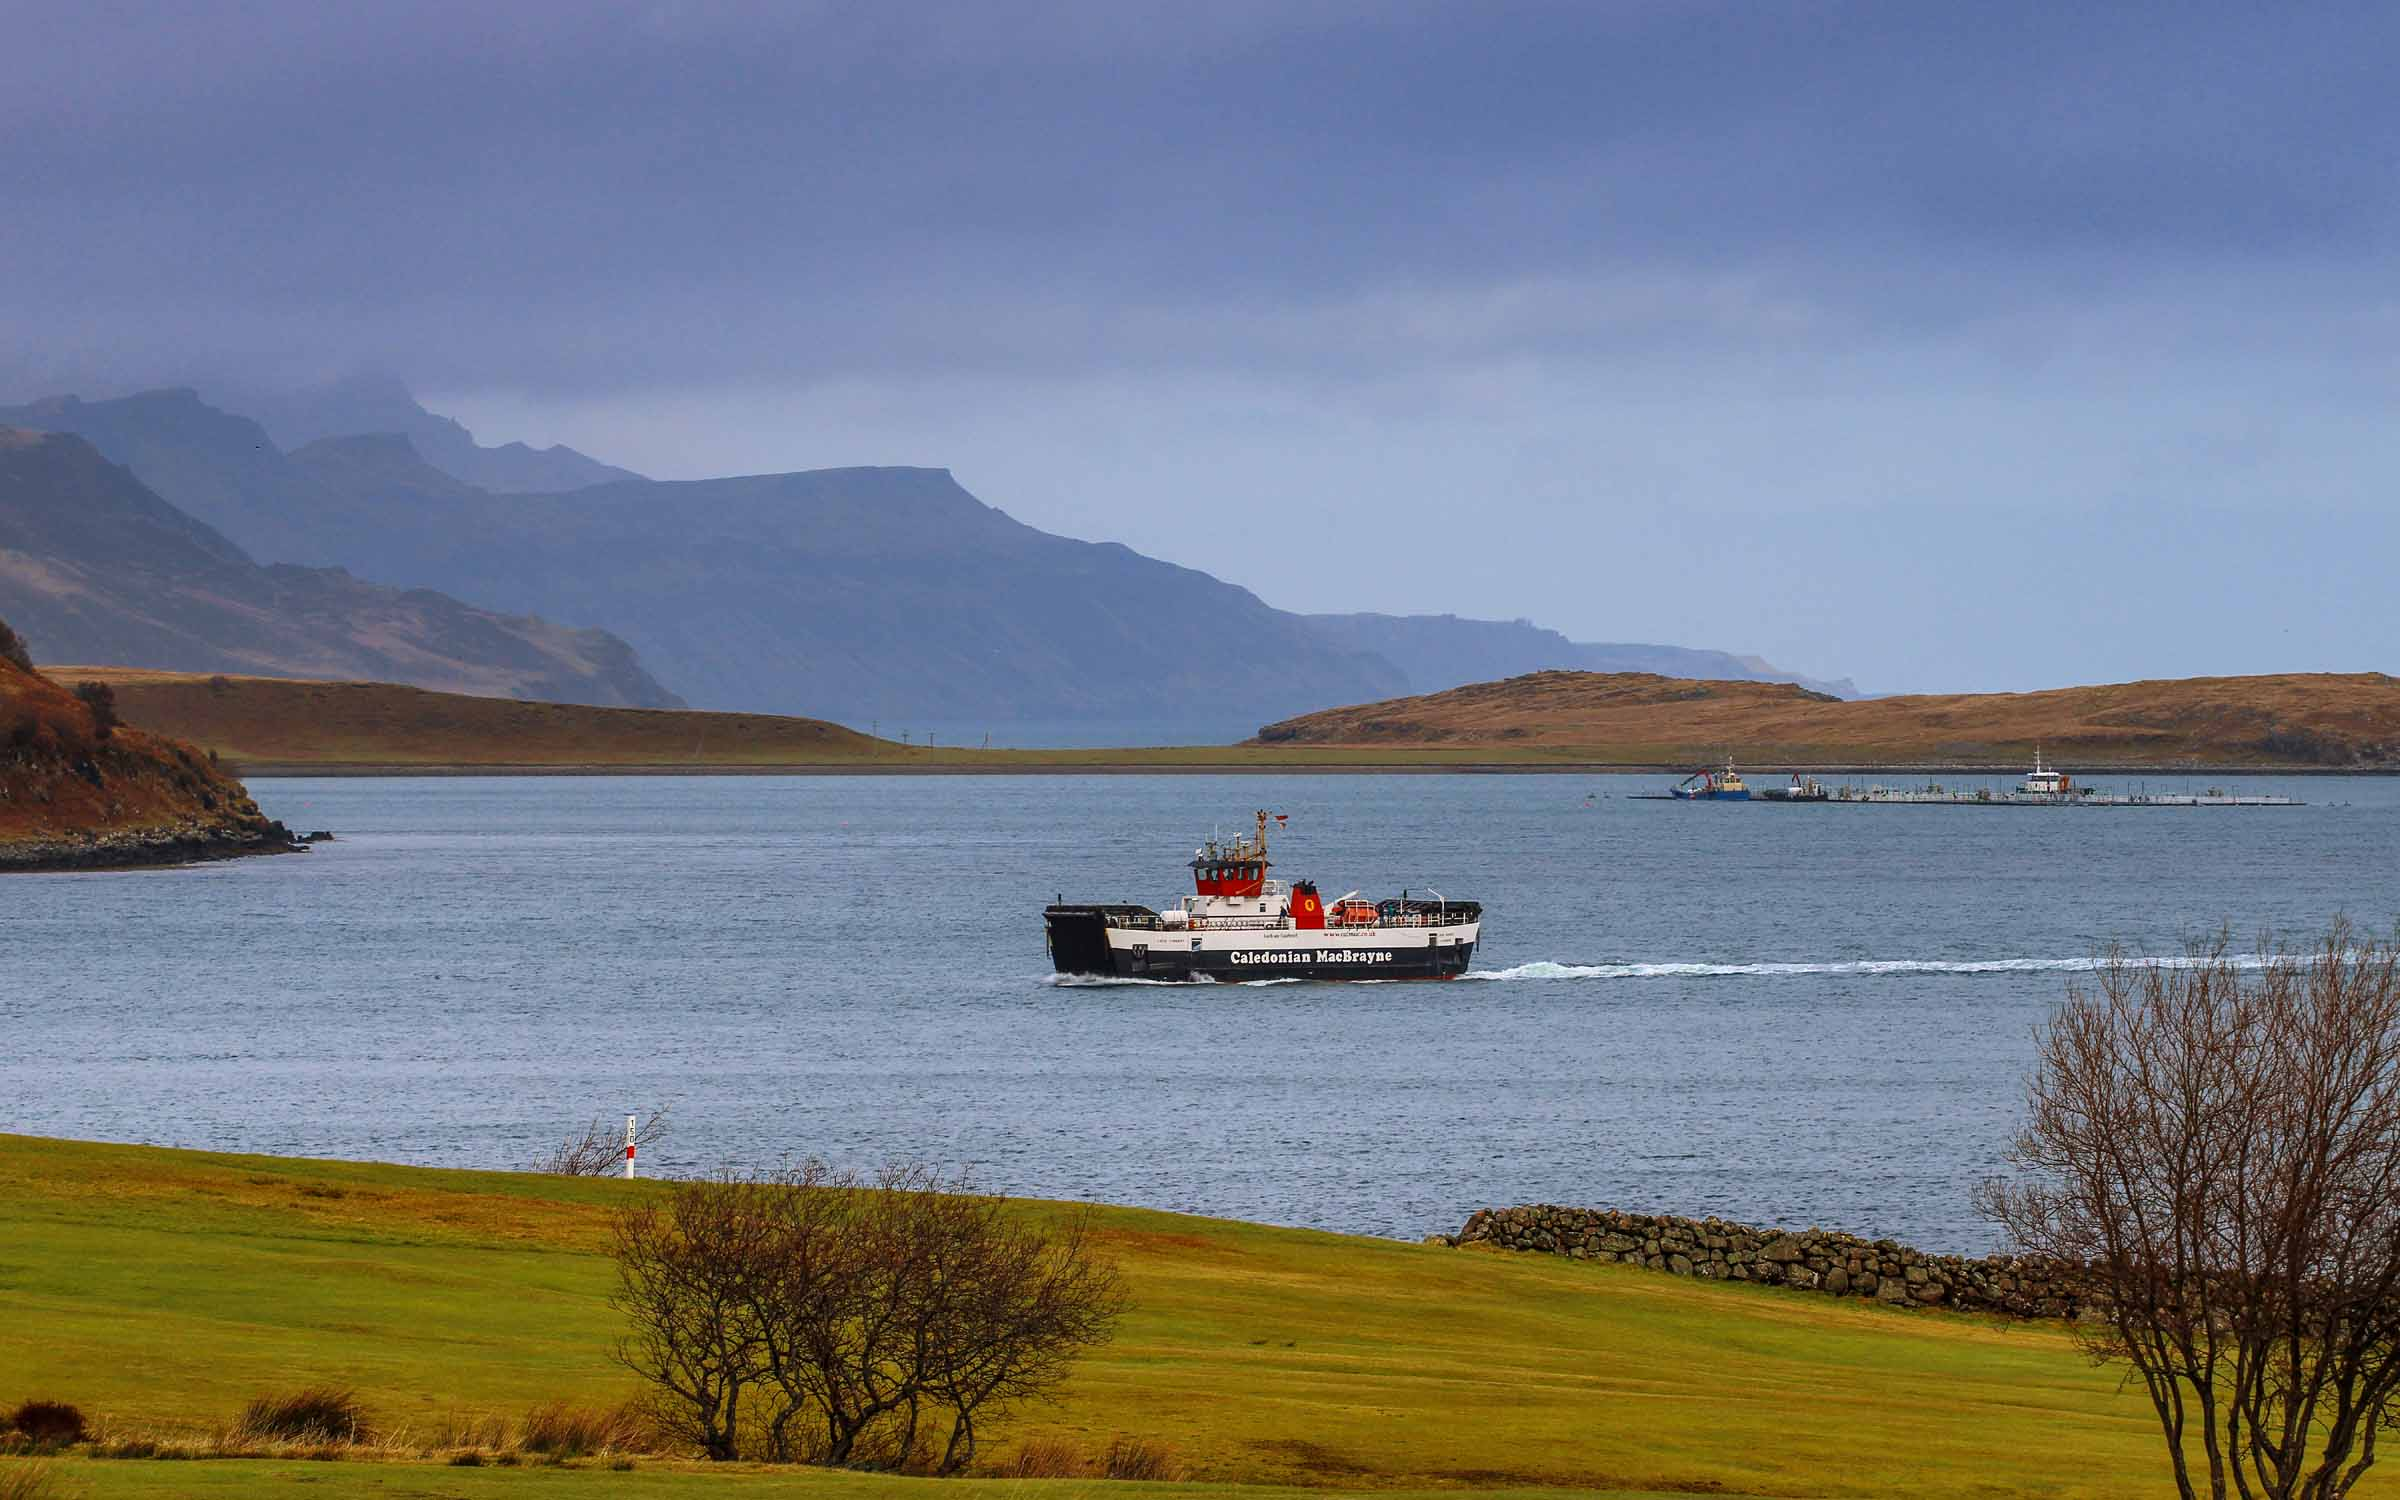 Loch Tarbert relieving on the Raasay run (Ships of CalMac)